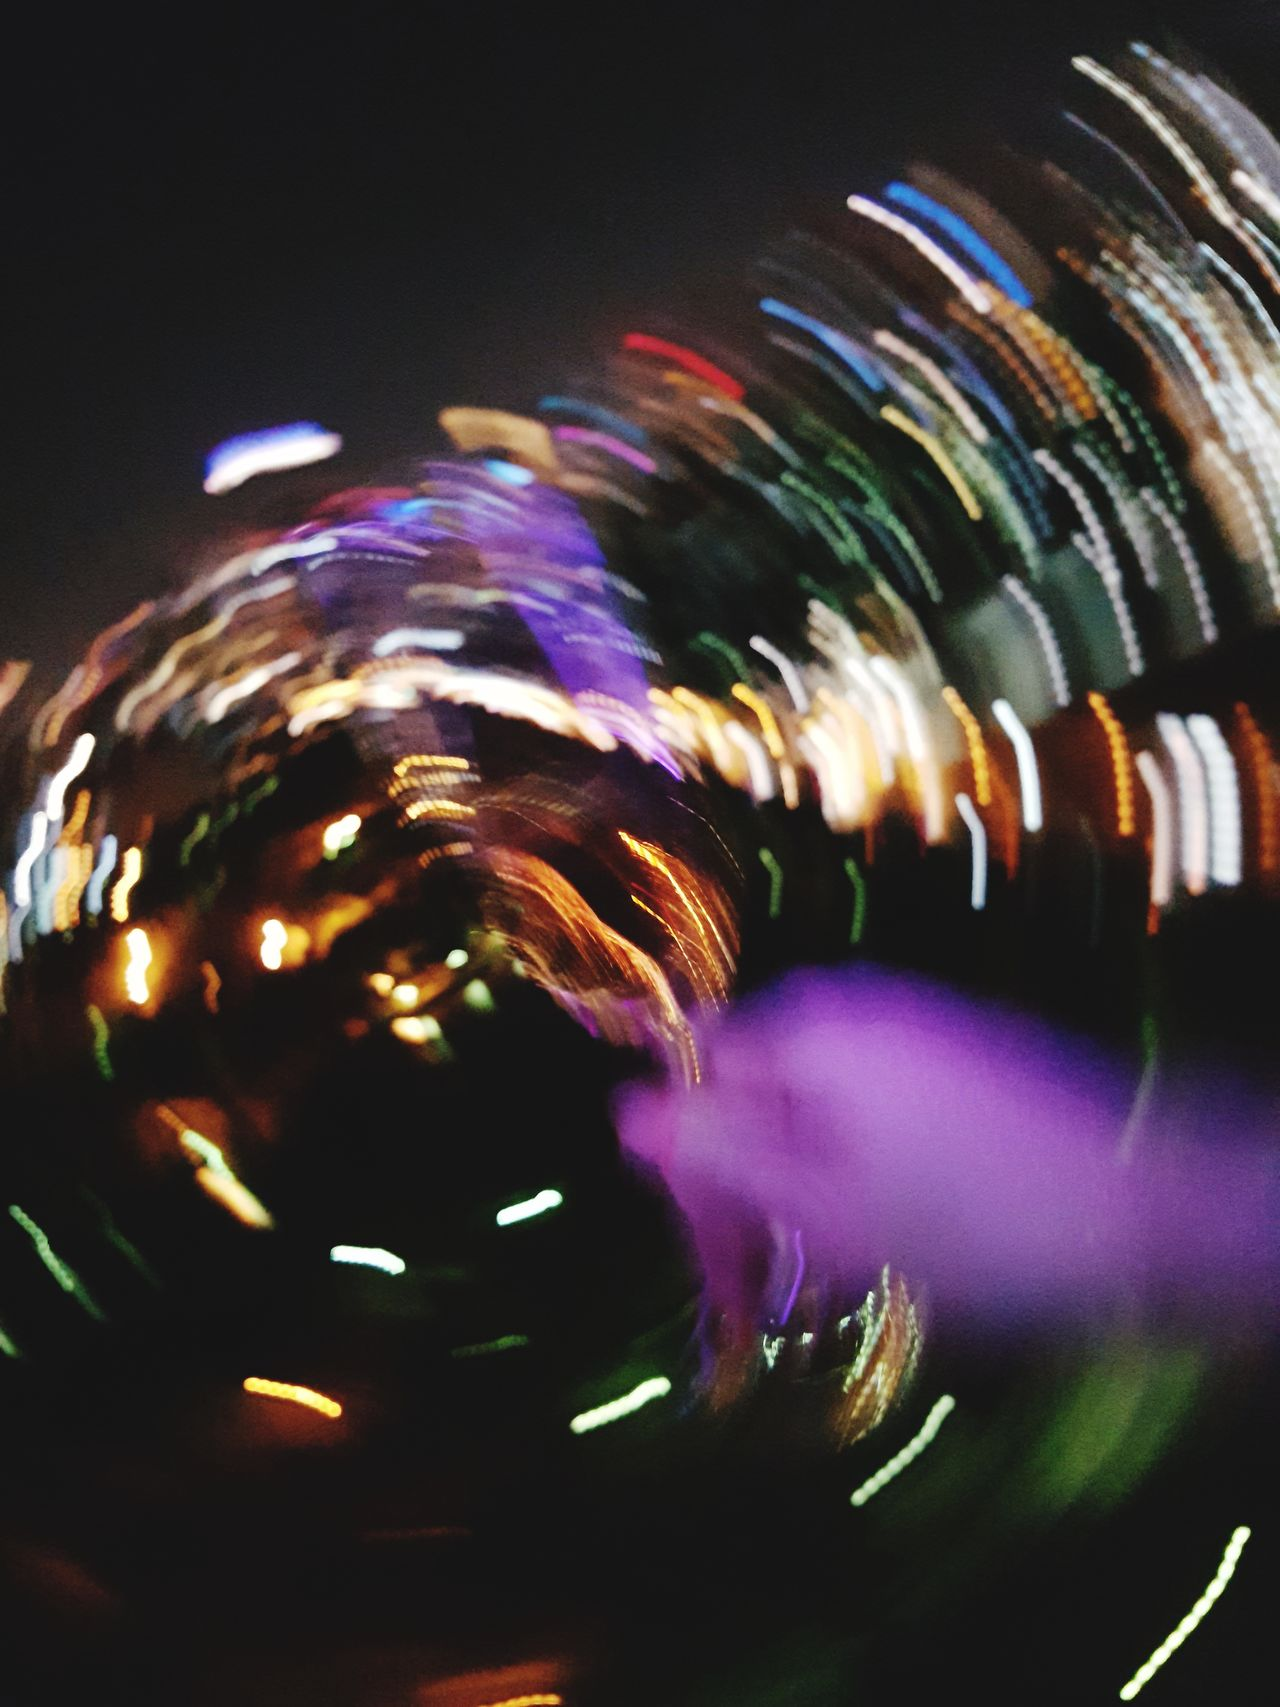 COLORFUL Night party lights swirling Multi Colored Celebration Close-up Night Party Party - Social Event Lights Colorful Lighting Effects By Night Midnight Swirling Swirly Movement Blur Motion Motion Capture Movement Blur Swirly Bokeh Swirling Colors Playing With The Light